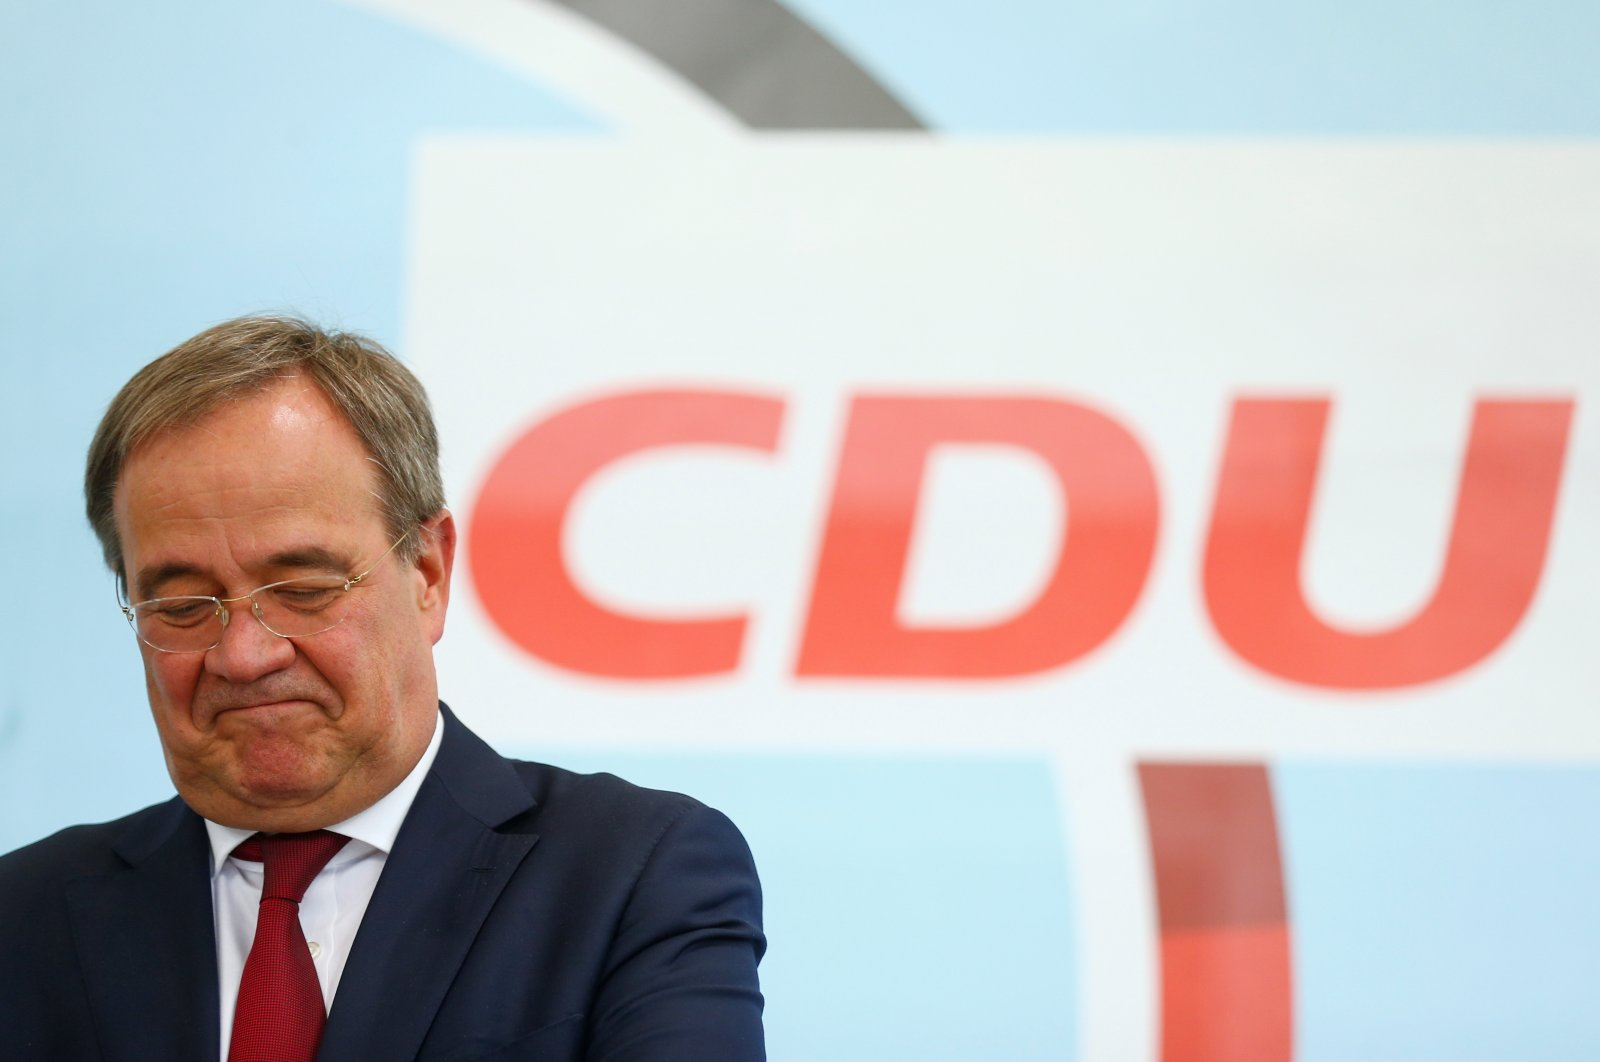 Armin Laschet, CDU/CSU candidate for Chancellor, CDU Federal Chairman and Minister President of North Rhine-Westphalia, attends an election rally in a beer garden in Korschenbroich, Germany, August 26, 2021. (Reuters Photo)